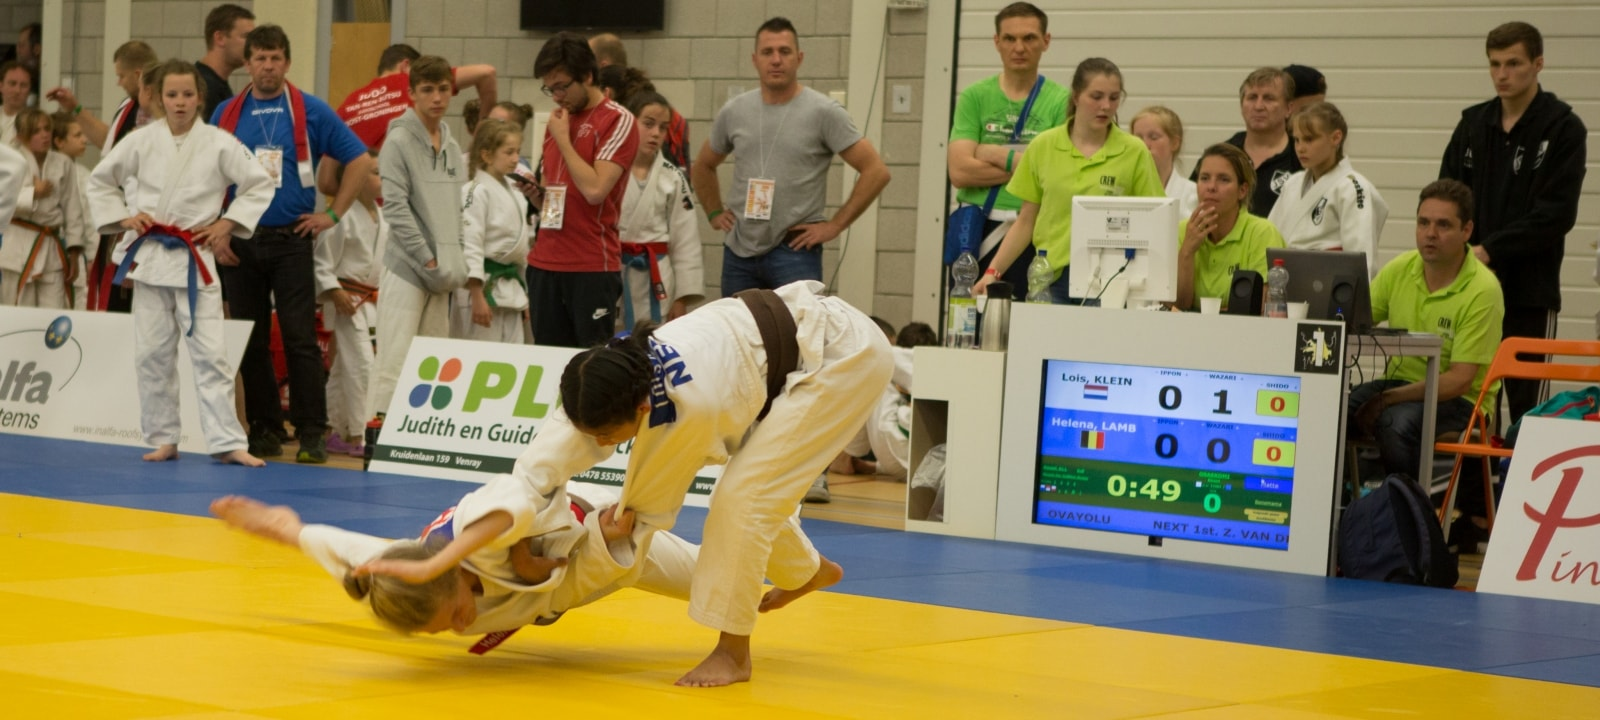 Internationaal Judotoernooi Venray